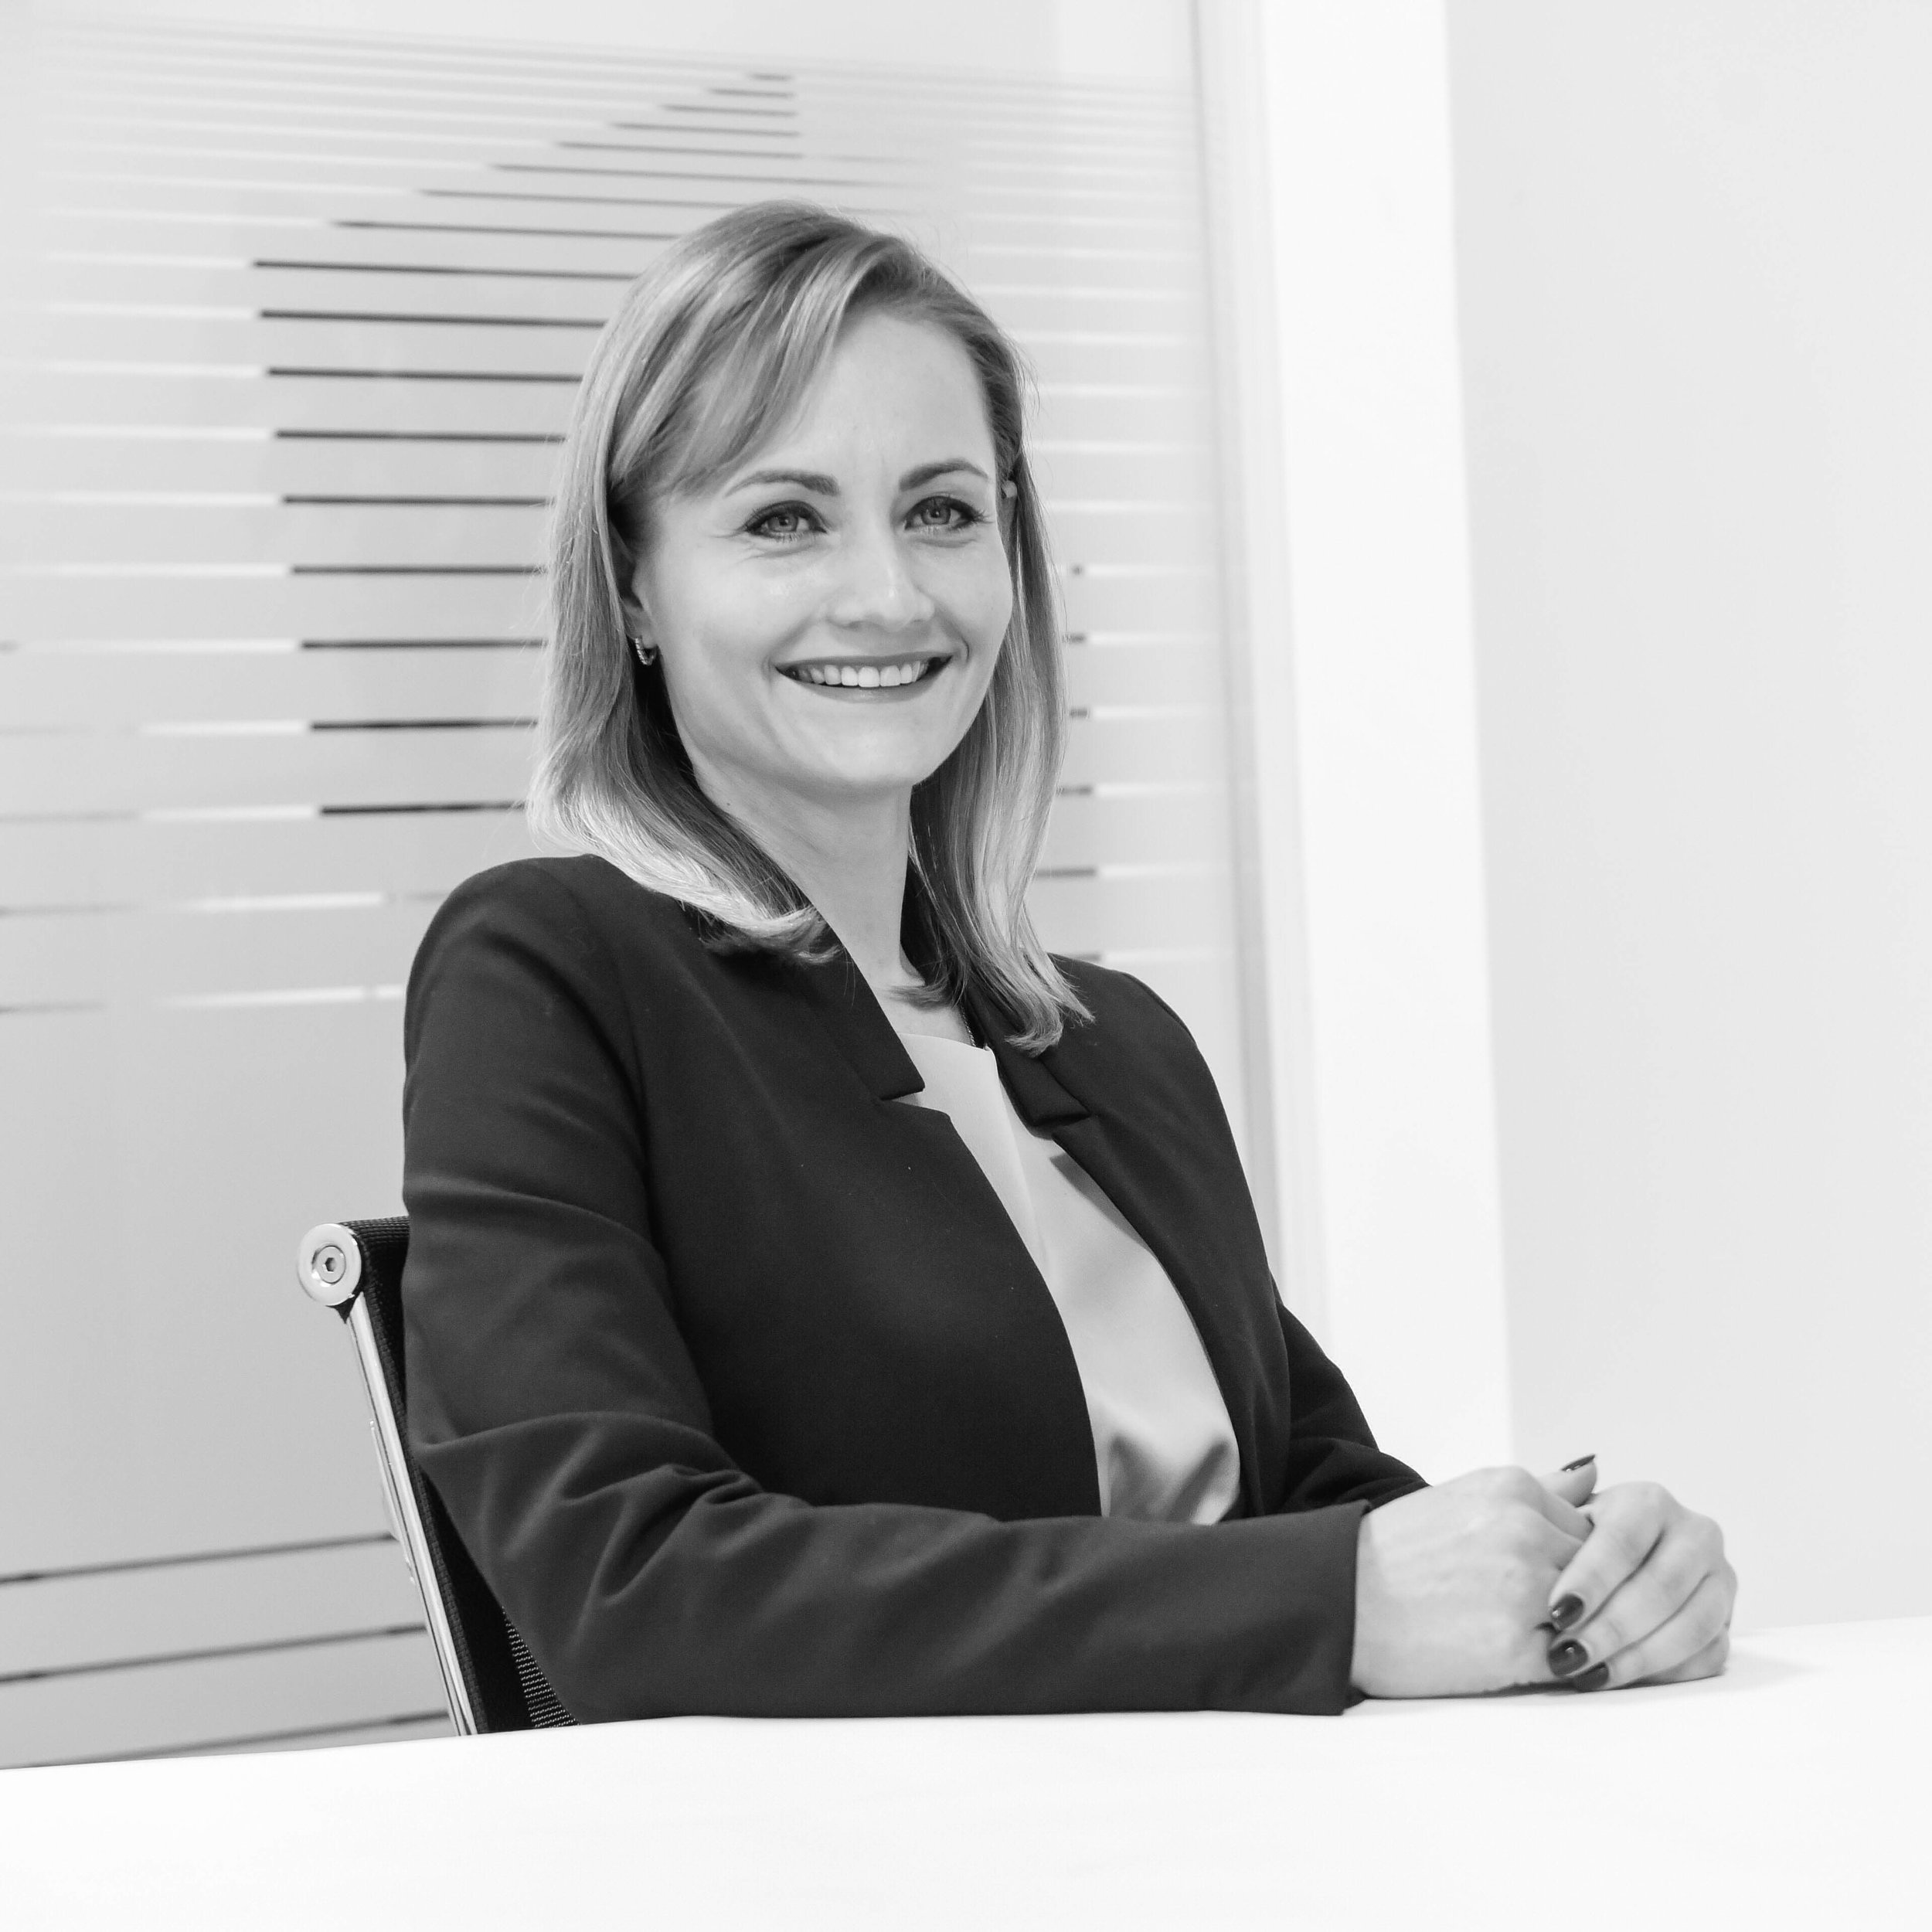 Irina Camilleri joined the Hanover team in October 2017 as Fund Accountant.  Prior to joining Hanover Irina was a Senior Administrator at fund administration firm Abacus Financial Services (Malta) Ltd and has worked at two major banks in her home country of Russia.  Irina holds a degree in Banking and Finance (Honours) from University of Malta and is working towards the ACCA qualification. She is also a member of the Association of Chartered Certified Accountants and the Malta Institute of Accountants.